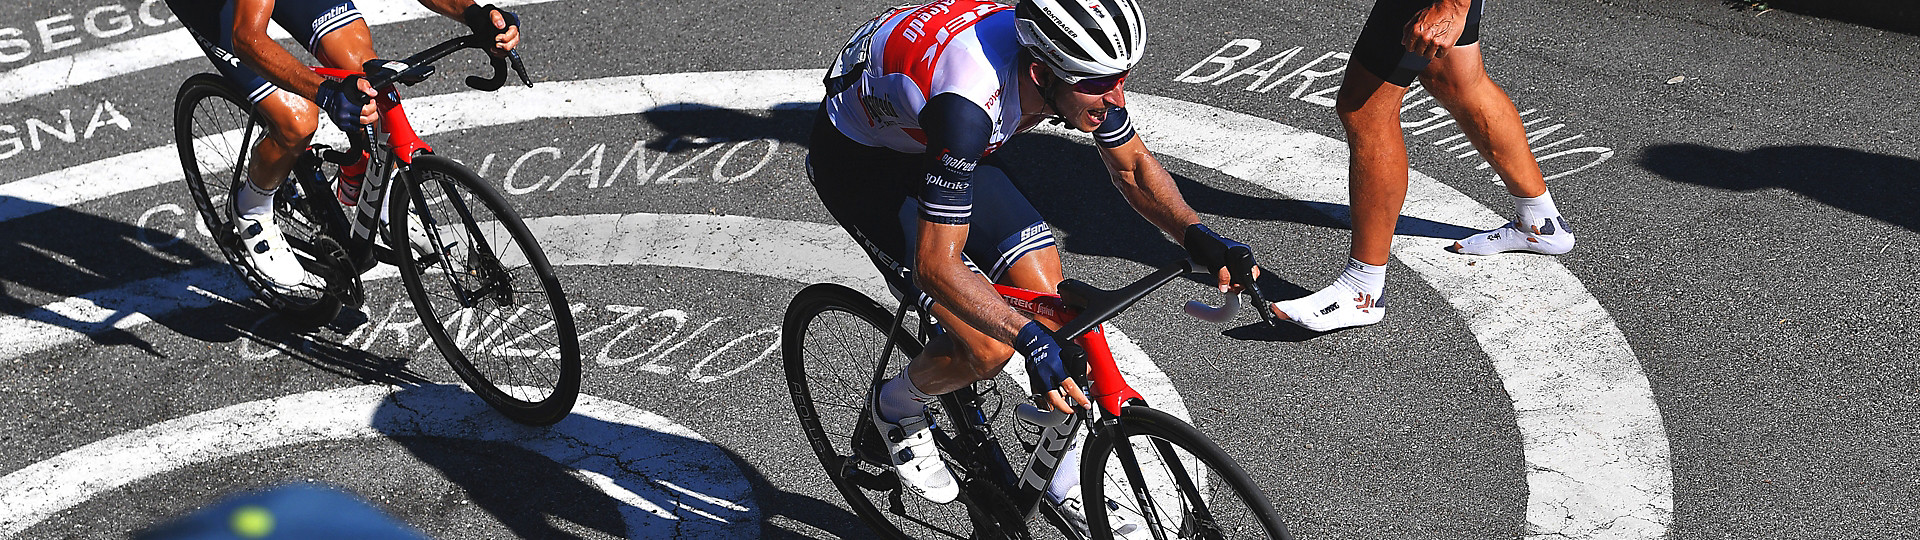 Lookdown view of Trek-Segafredo riders climbing a road with names painted in pavement.